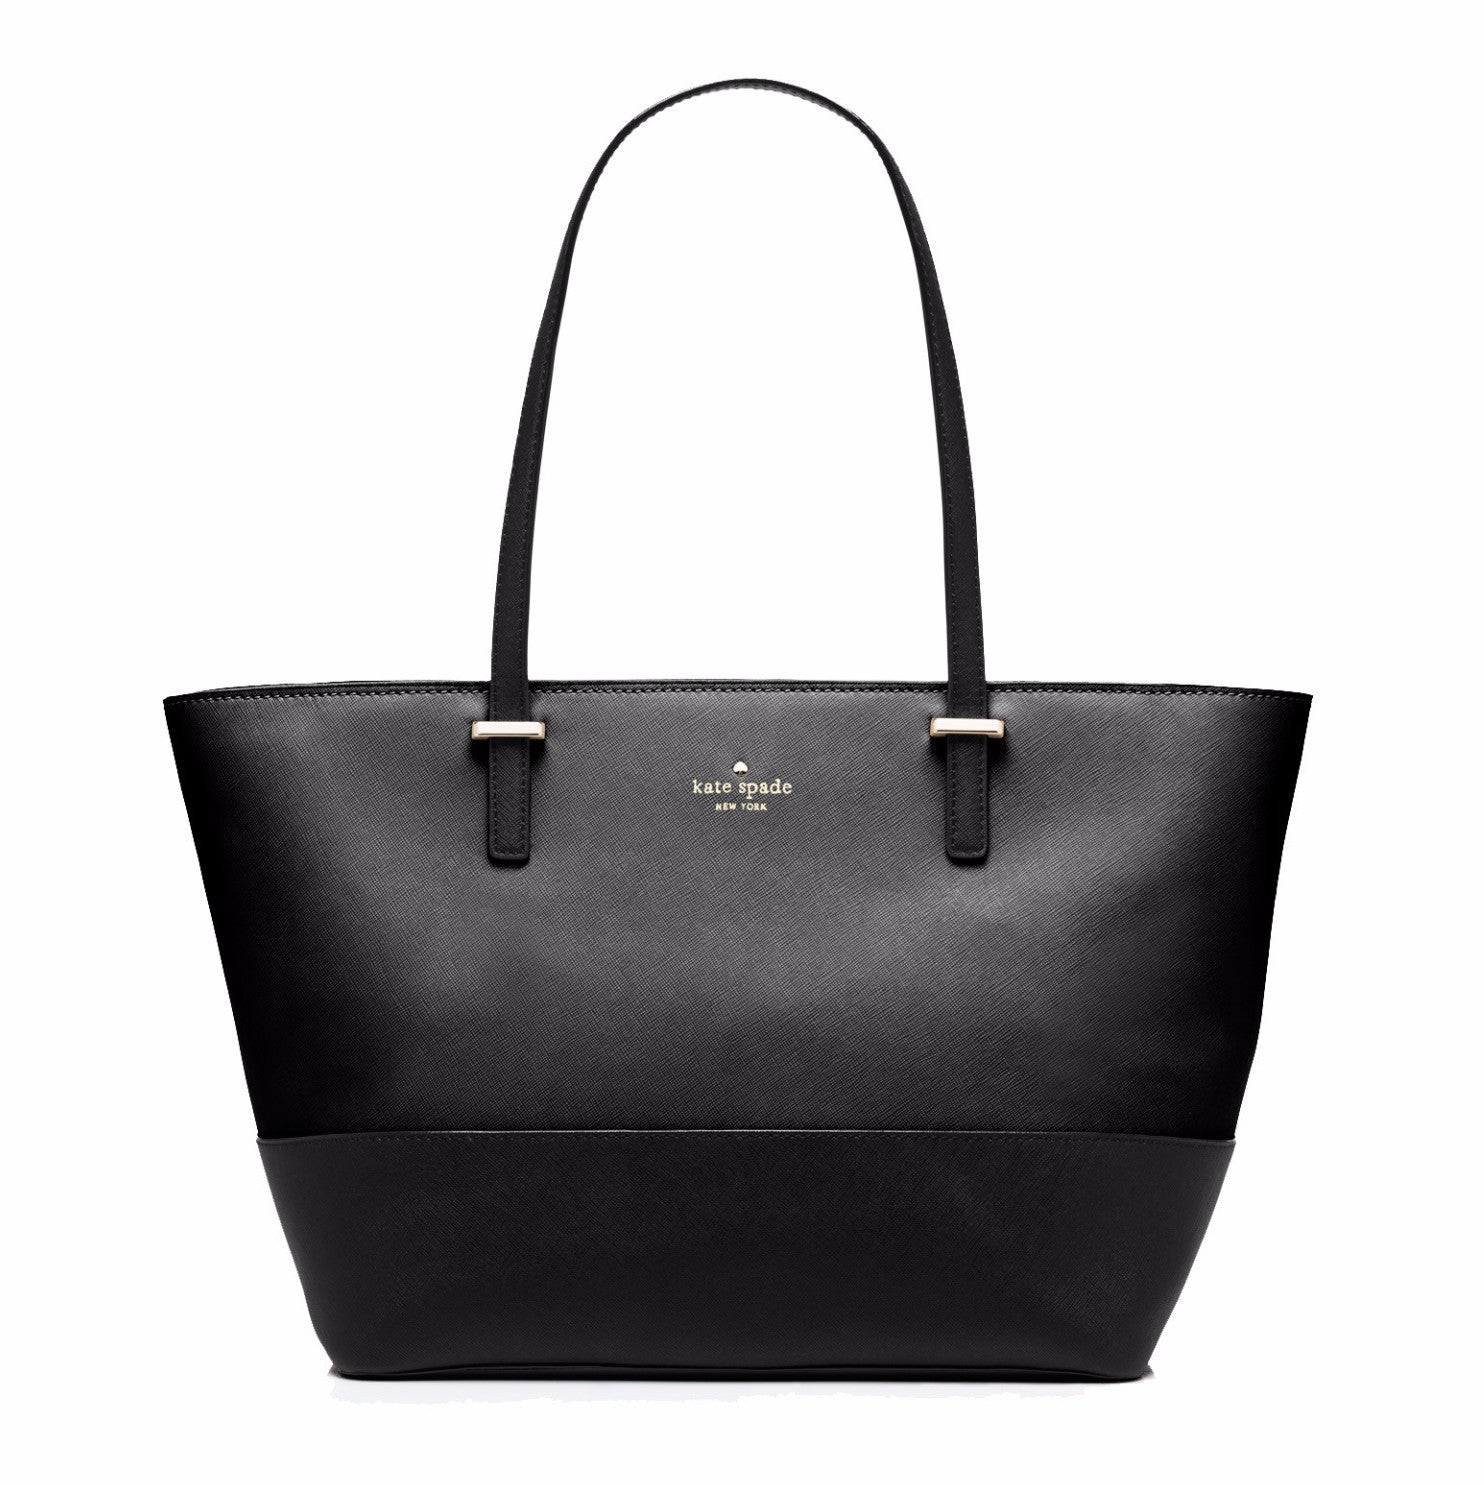 0e3bb61aa27a ... Everpurse Kate Spade Small Harmony Black Leather Tote  Purse that  Charges Phone ...